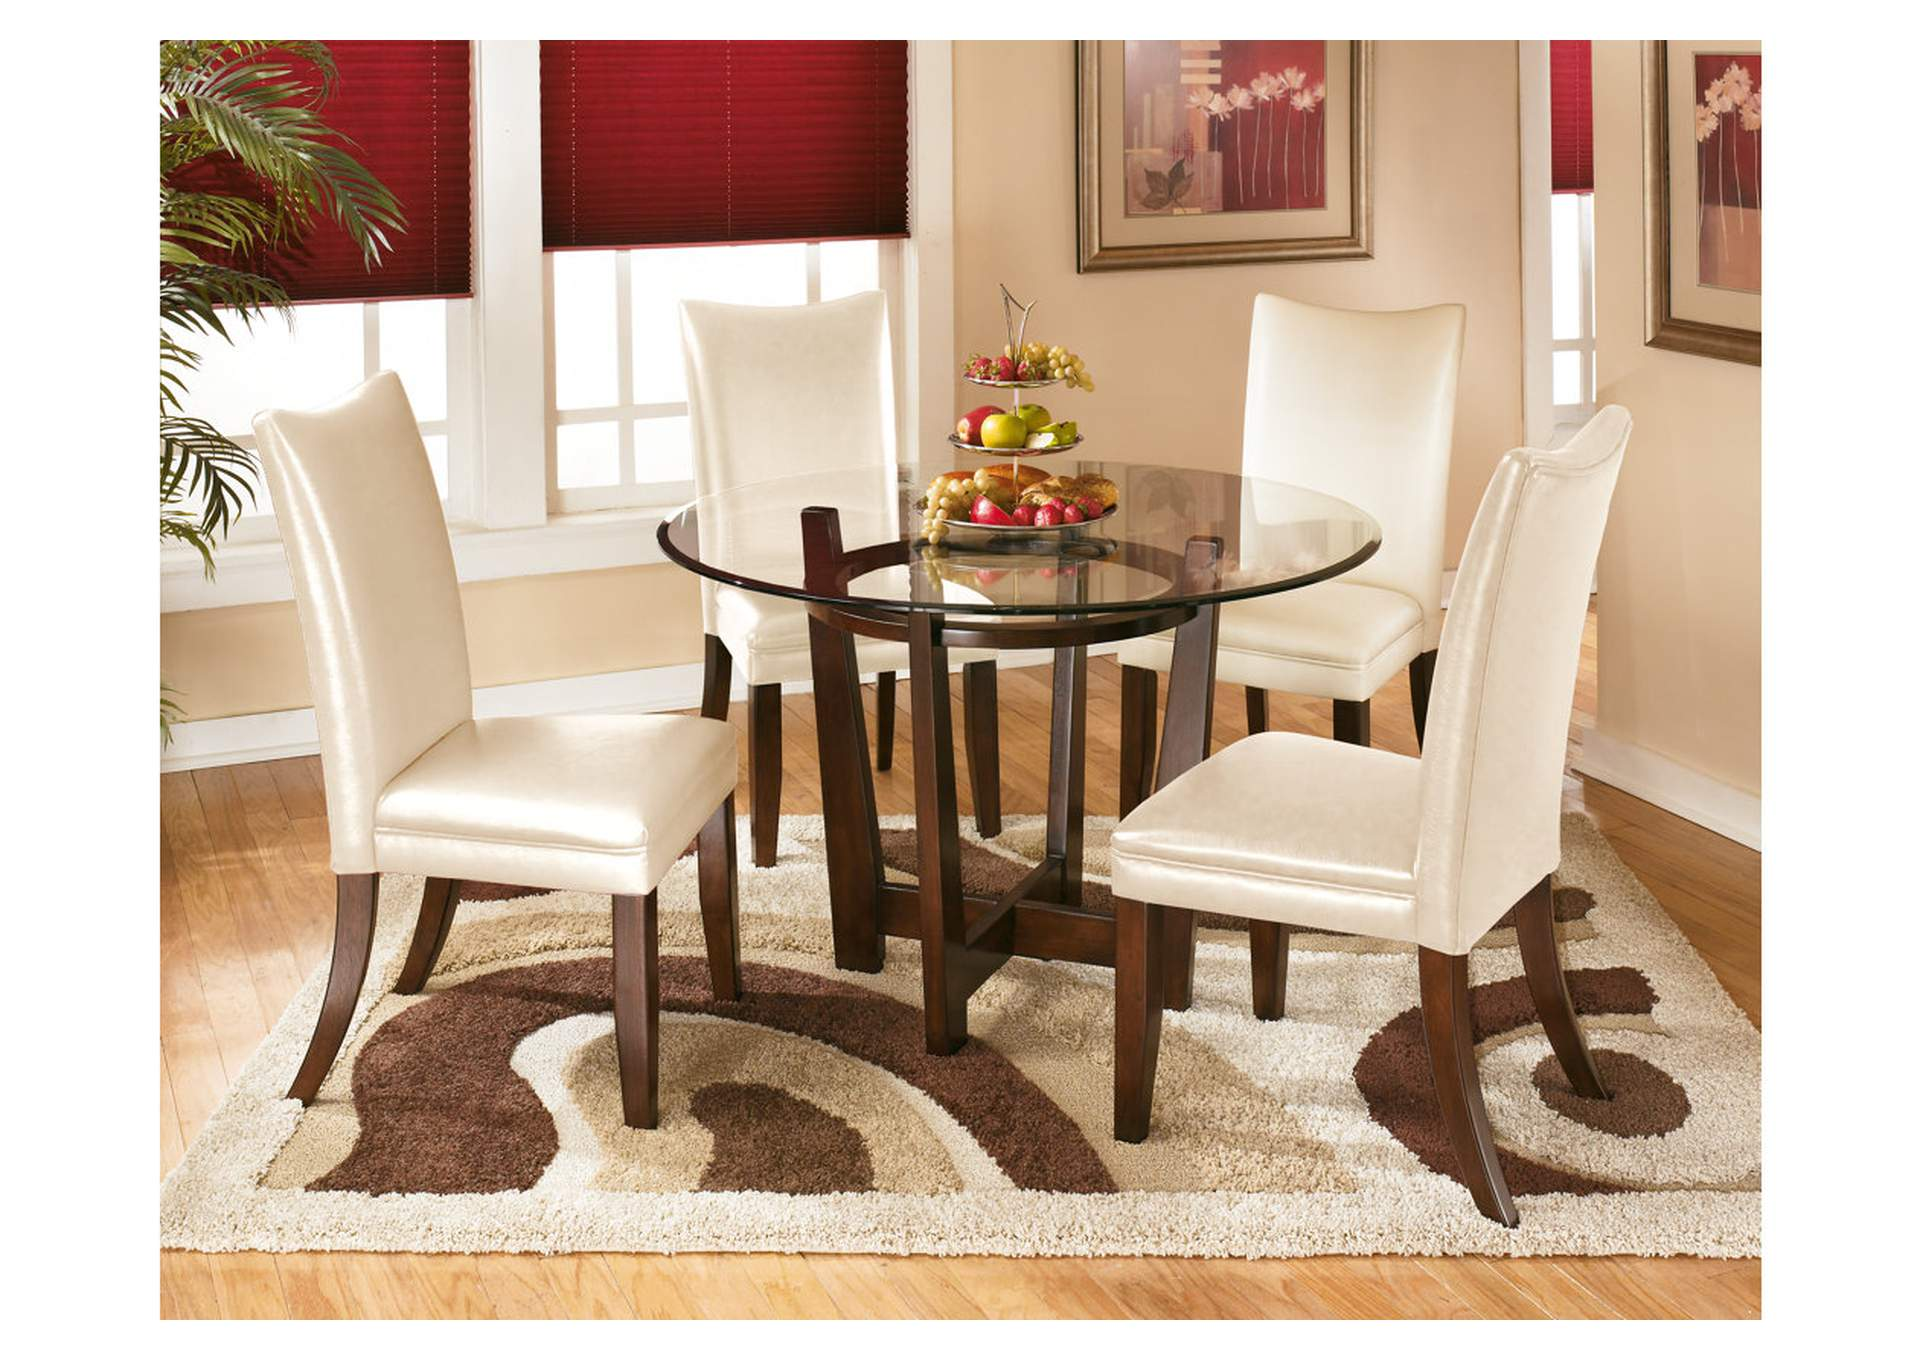 Charell Round Dining Table w/4 Ivory Side Chairs,Signature Design by Ashley